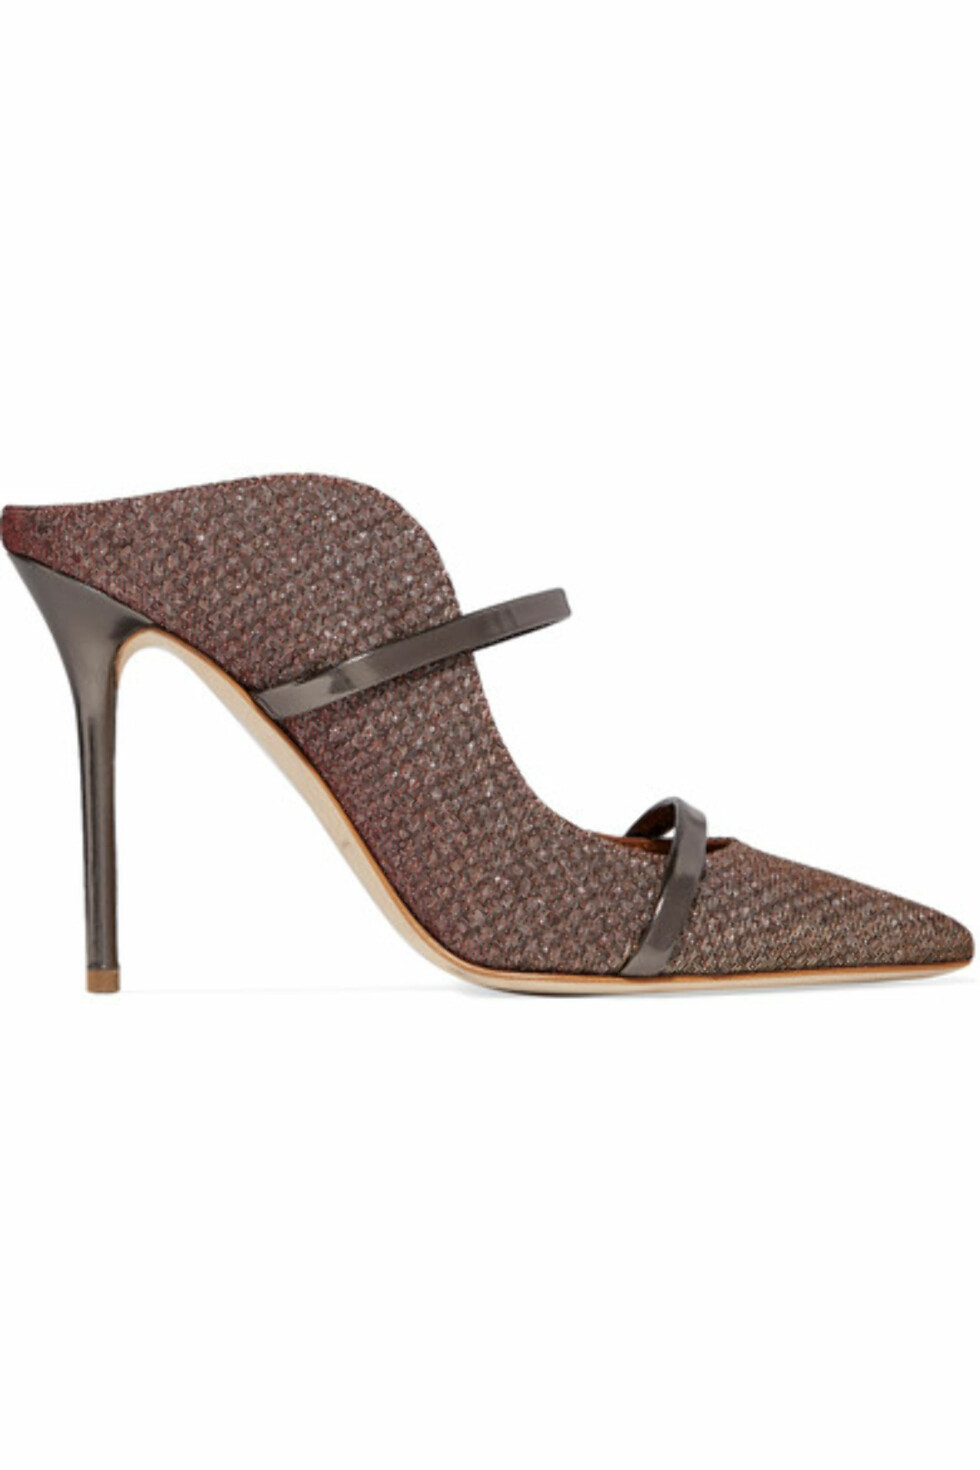 Hæler fra Malone Souliers via Net-a-porter.com  5200,-  https://www.net-a-porter.com/no/en/product/980736/malone_souliers/maureen-leather-trimmed-metallic-mesh-mules